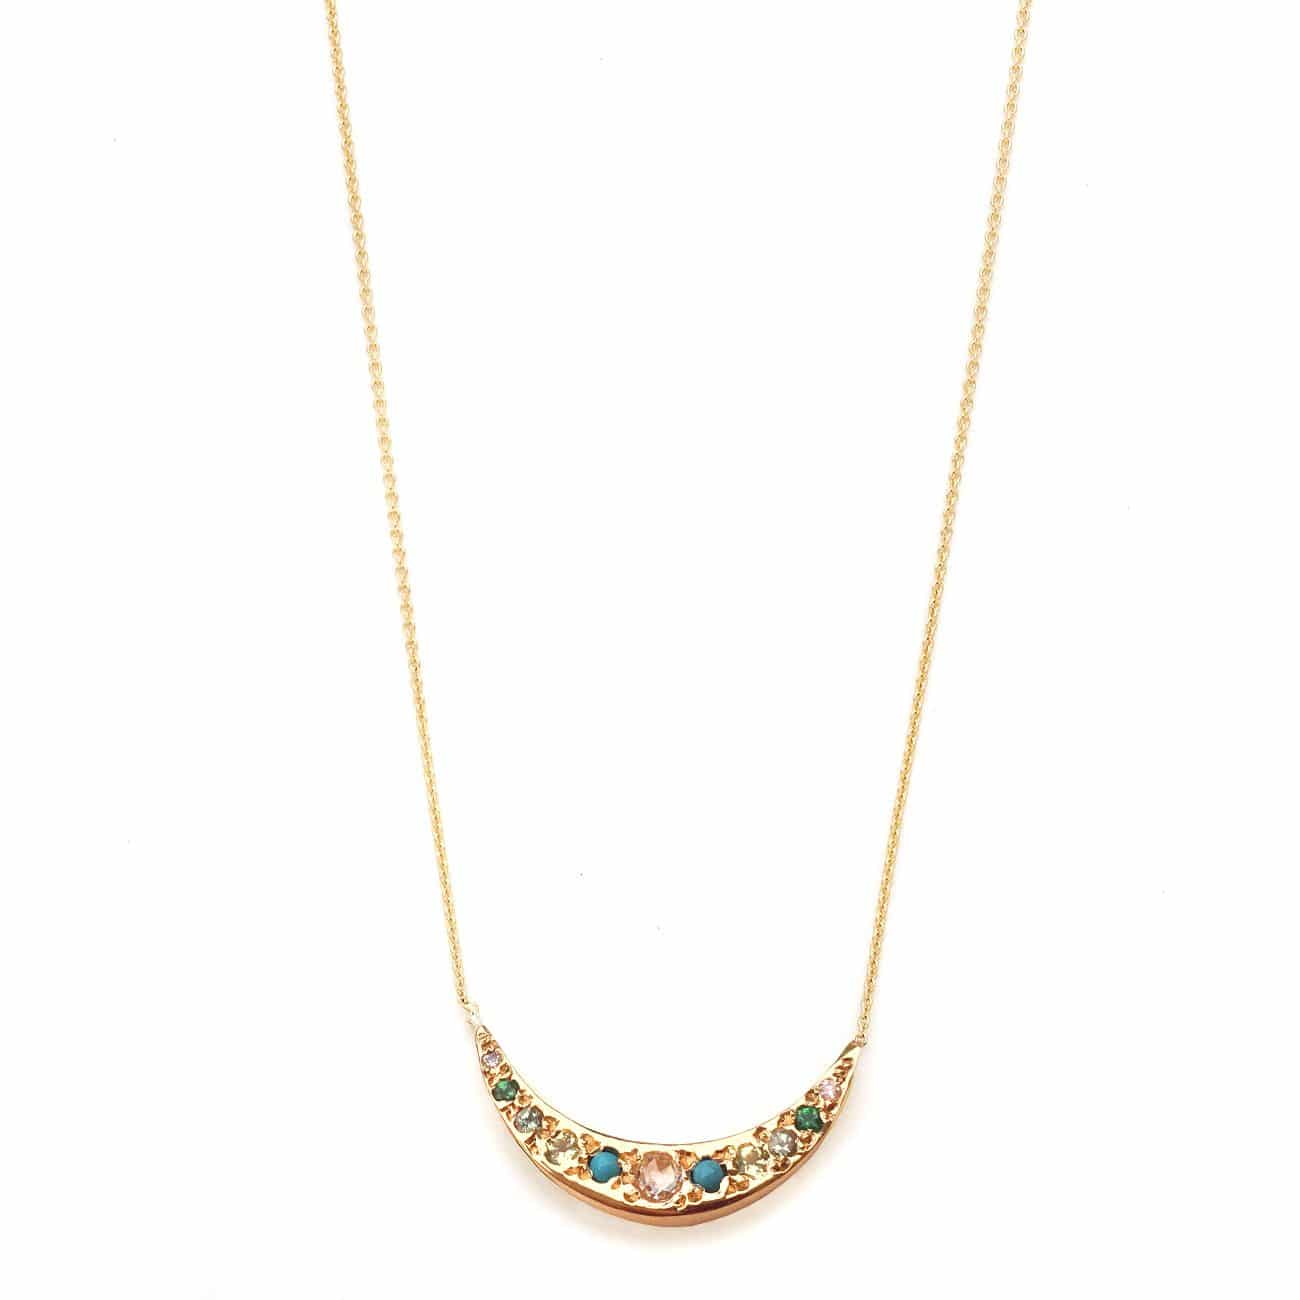 yellow-gold-tie-dye-moon-necklace-new02a